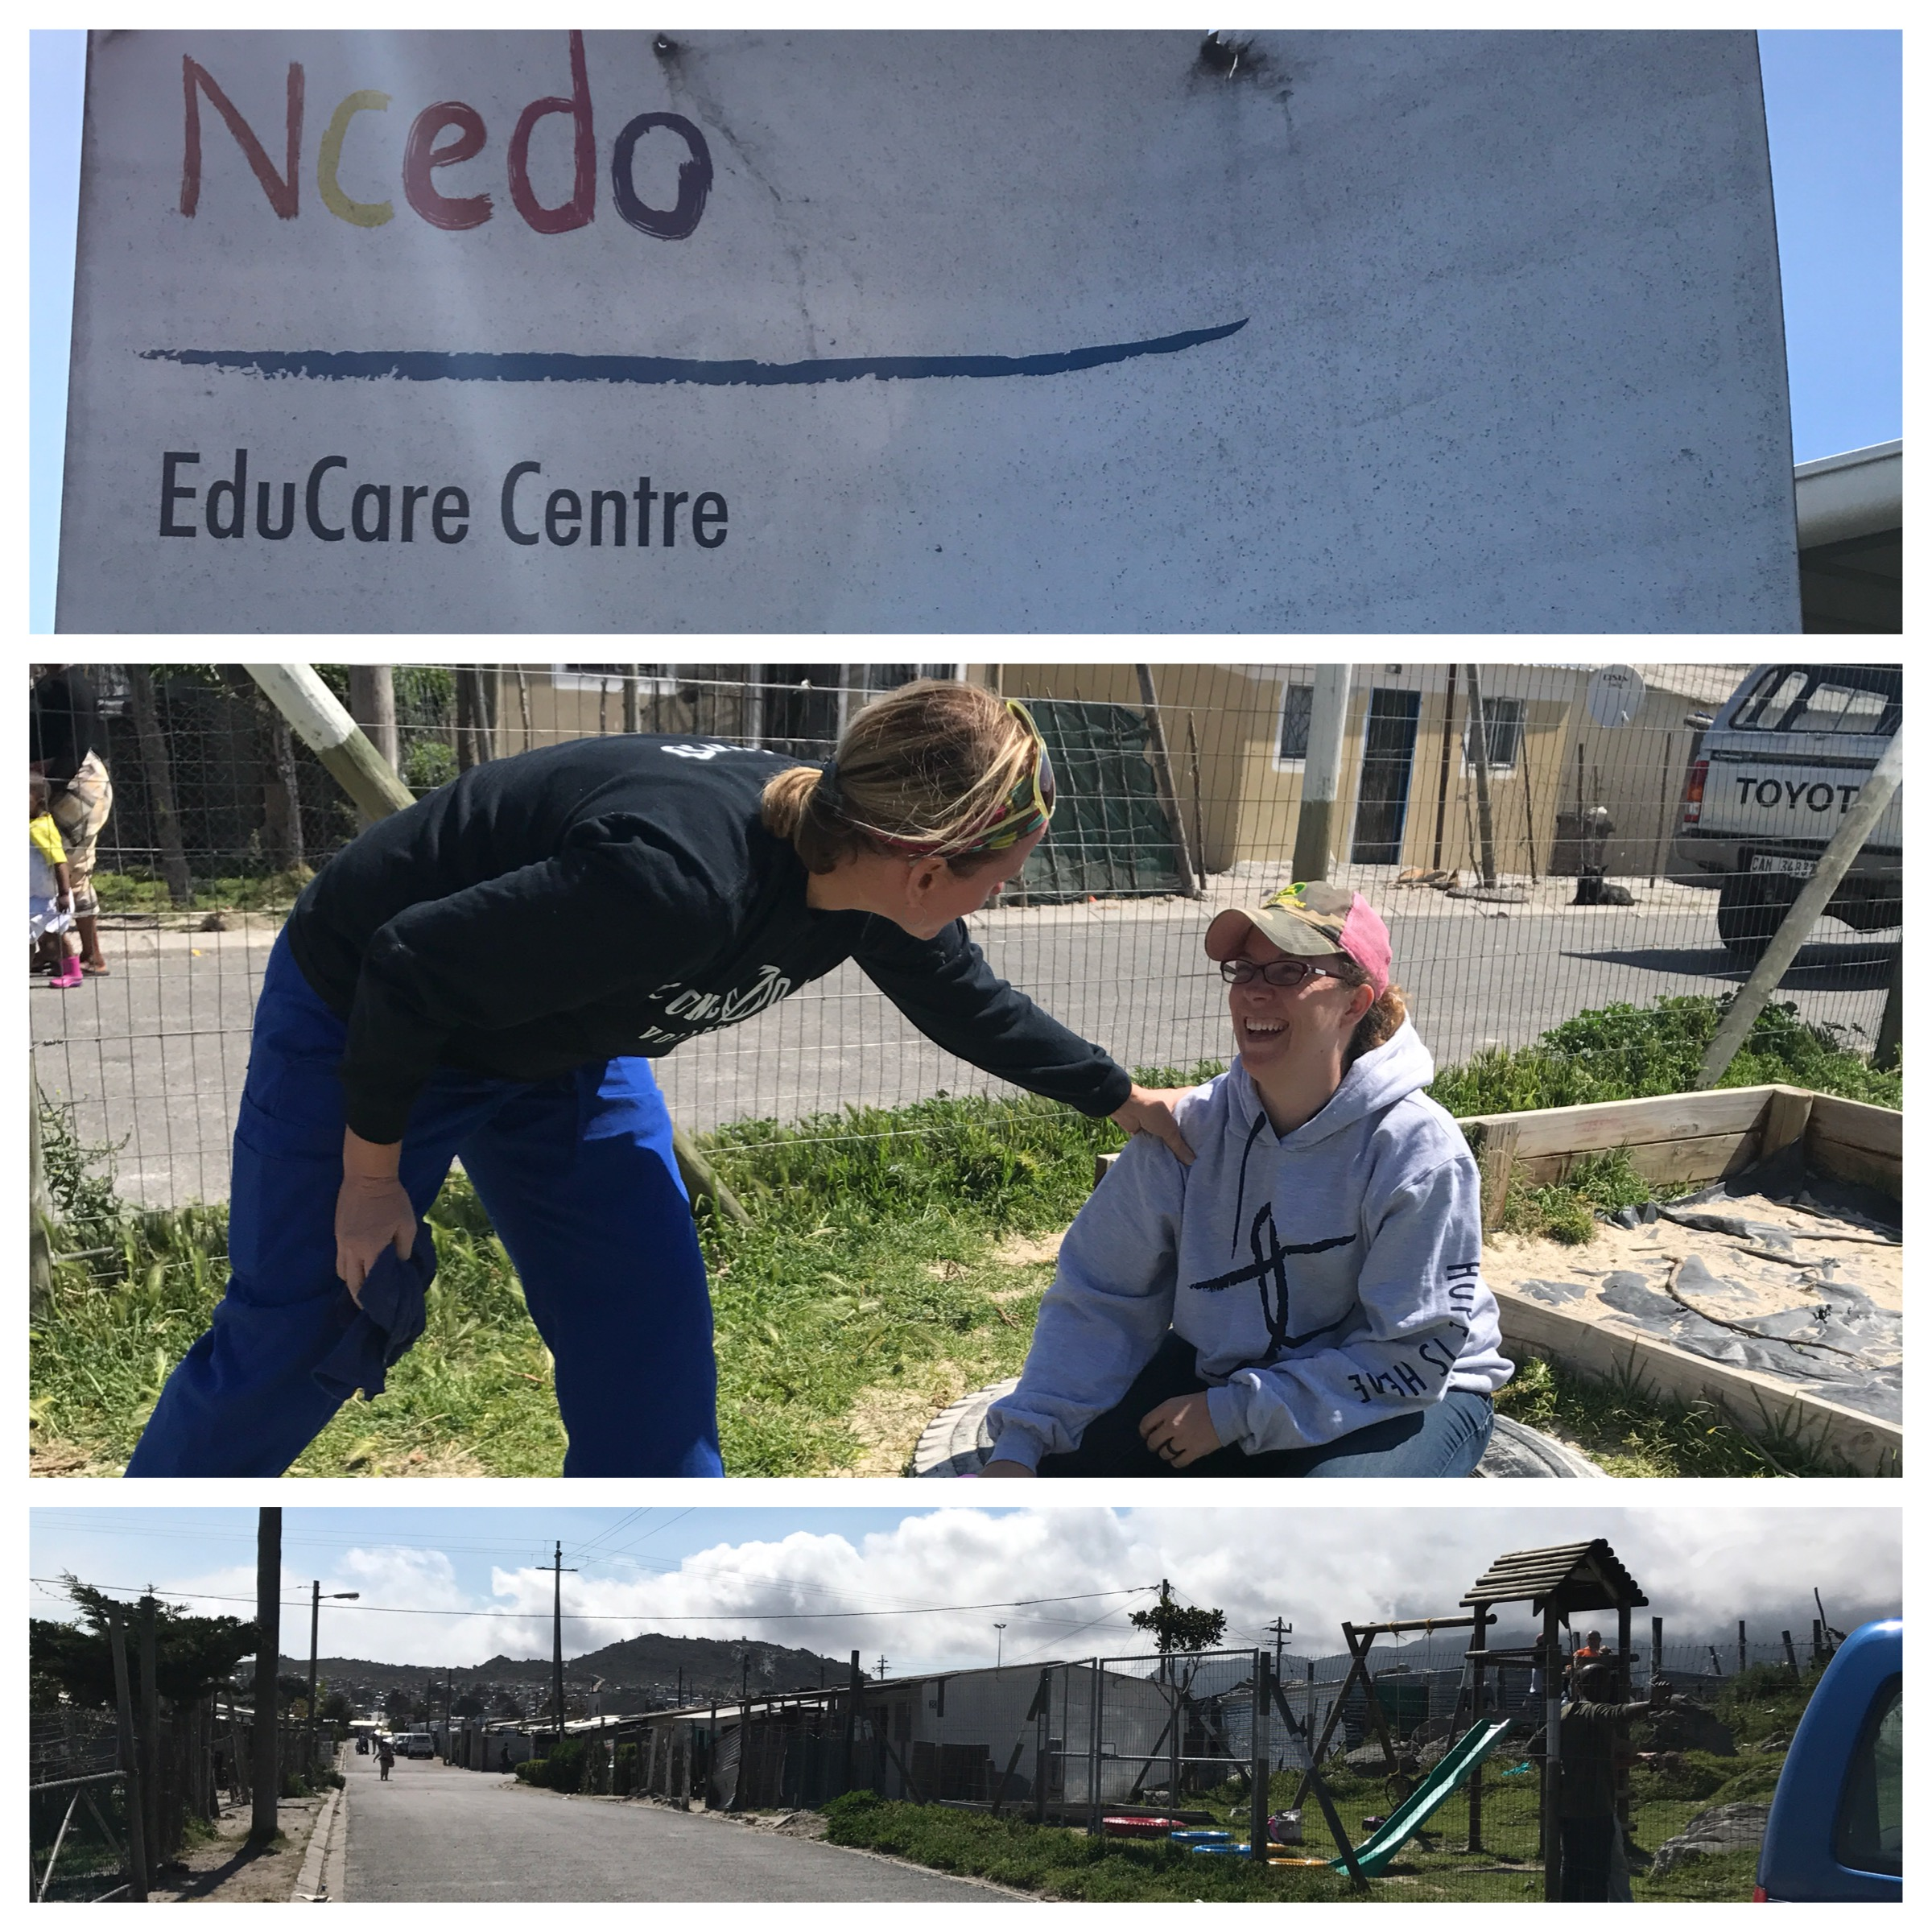 Educare! Crèches/preschools that serve hundreds of kids. 3 sites in this community. We are doing multiple projects at these locations this week - painting, building, repair, playing with kiddos, and MORE!